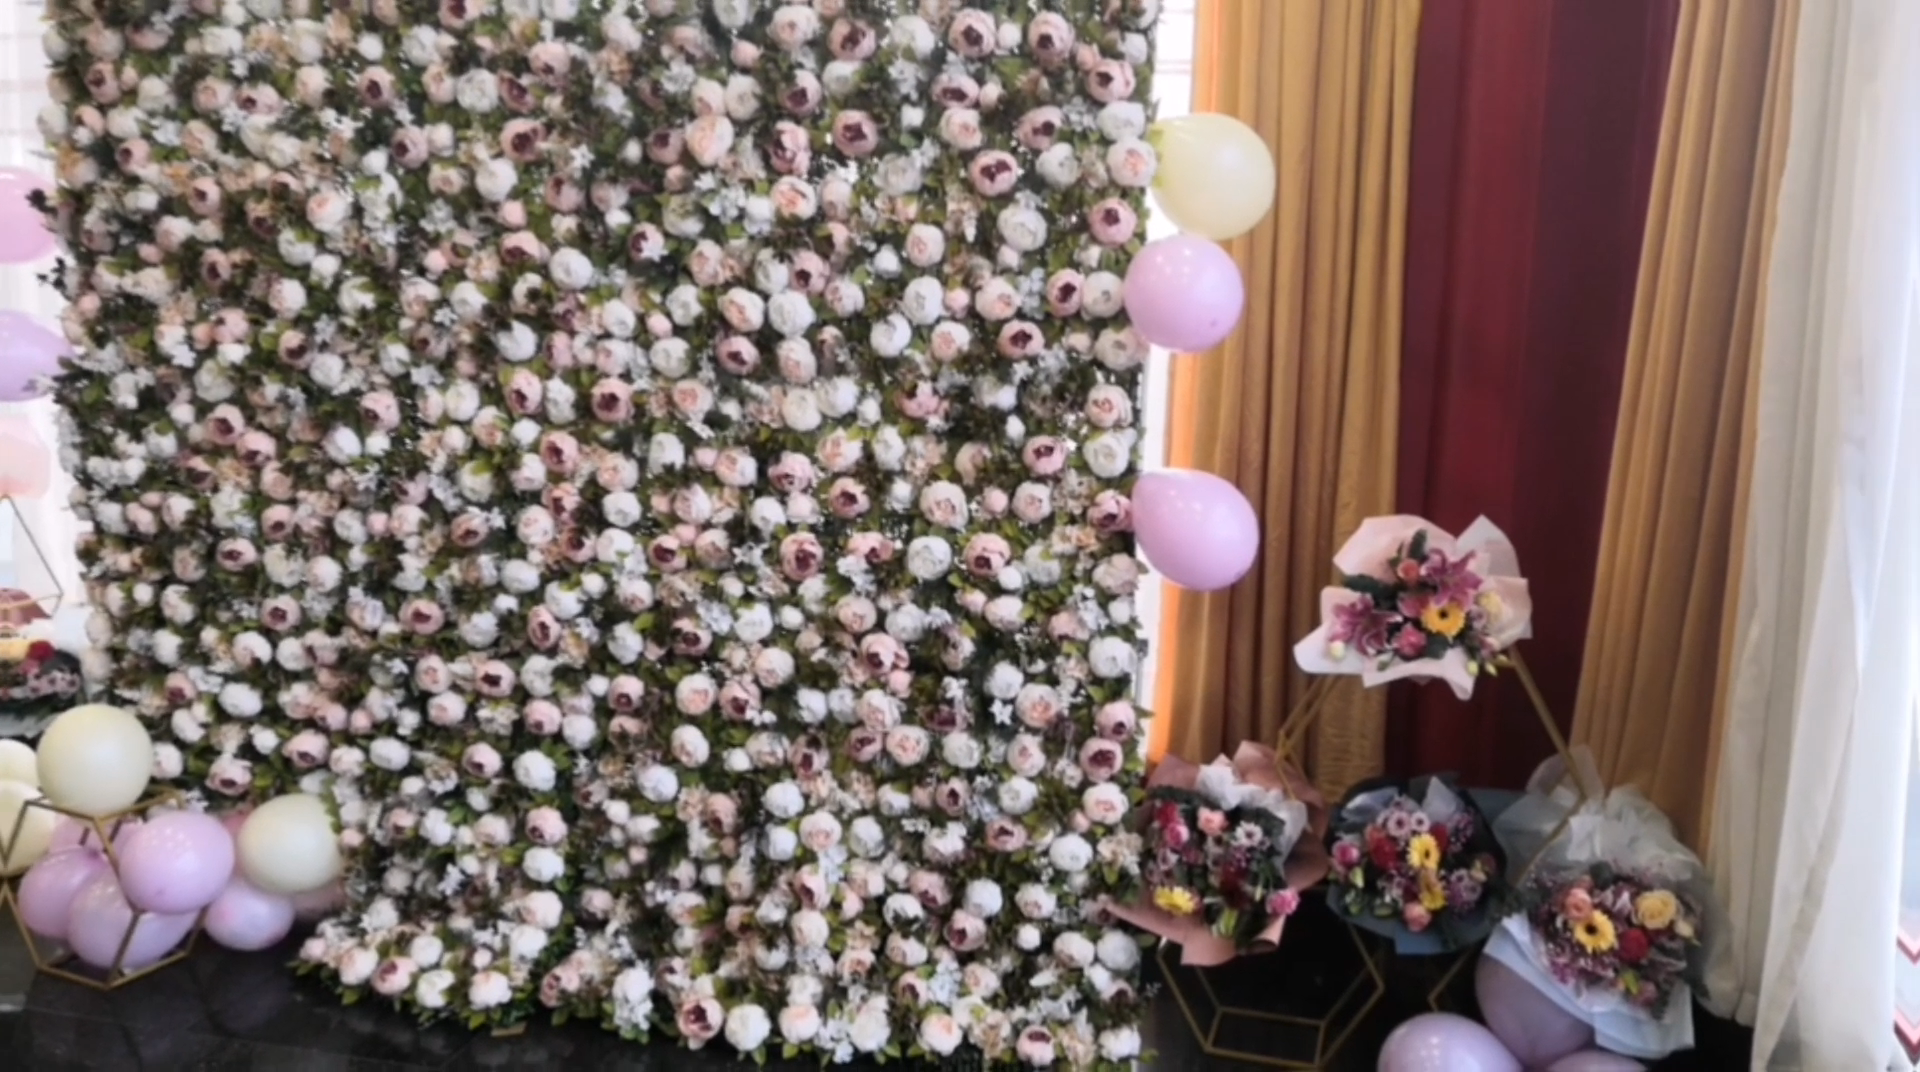 Customized wedding roll up decorative artificial flower wall backdrop FC1001